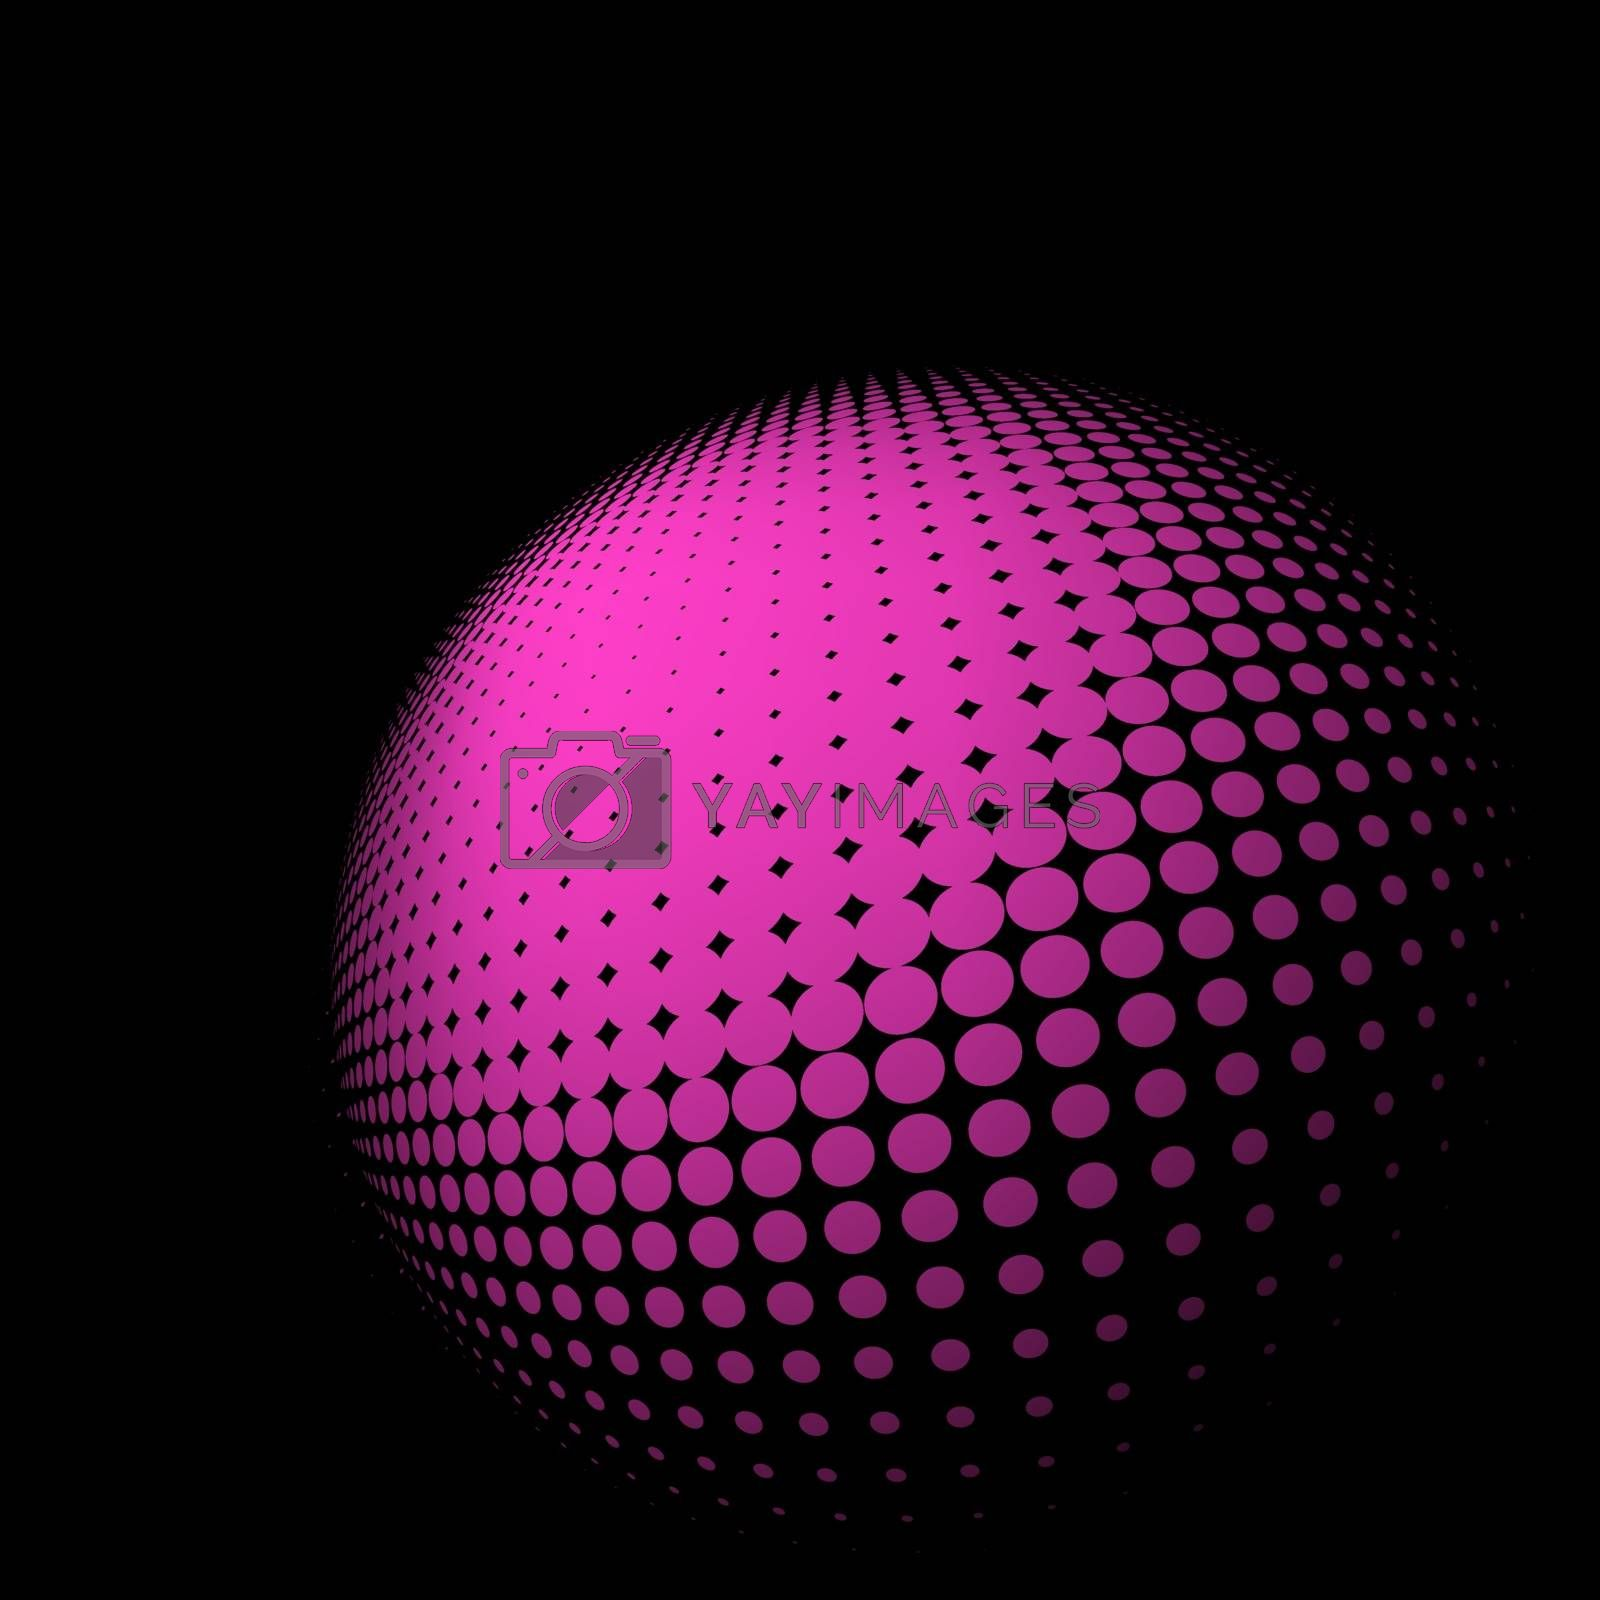 Abstract halftone abstract background. EPS 8 vector file included